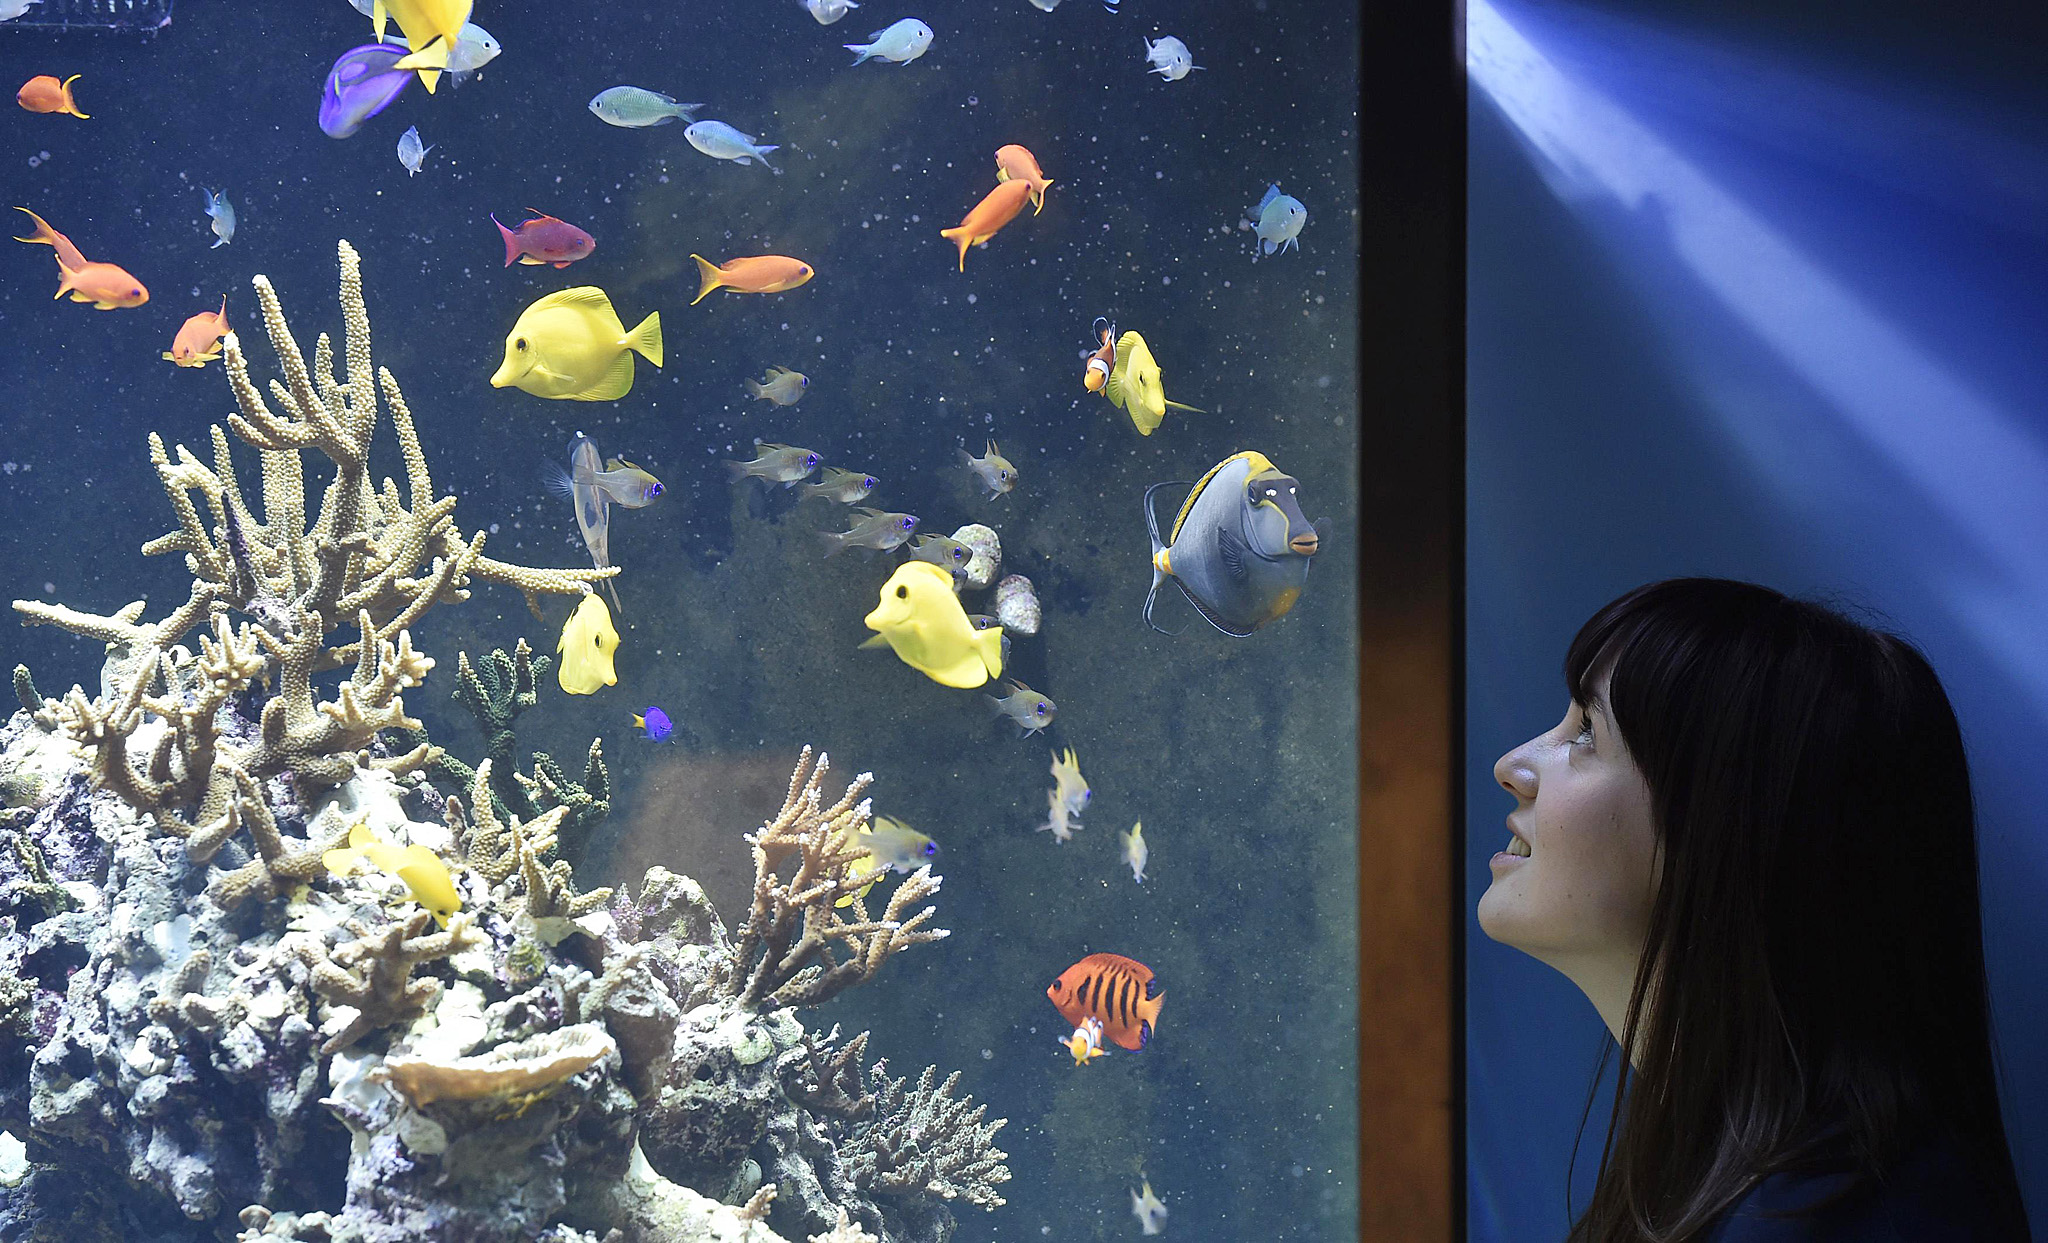 New exhibition, 'Coral Reefs: Secret Cities of the Sea' opens at Natural History Museum in London...Museum employee Vicky views fish and coral in an aquarium at the Natural History Museum in west London March 25, 2015. It forms part of a new exhibition, 'Coral Reefs: Secret Cities of the Sea', featuring a panoramic virtual dive and over 250 specimens from the Museum's coral, fish and marine invertebrate  collection, which opens on March 27.  REUTERS/Toby Melville